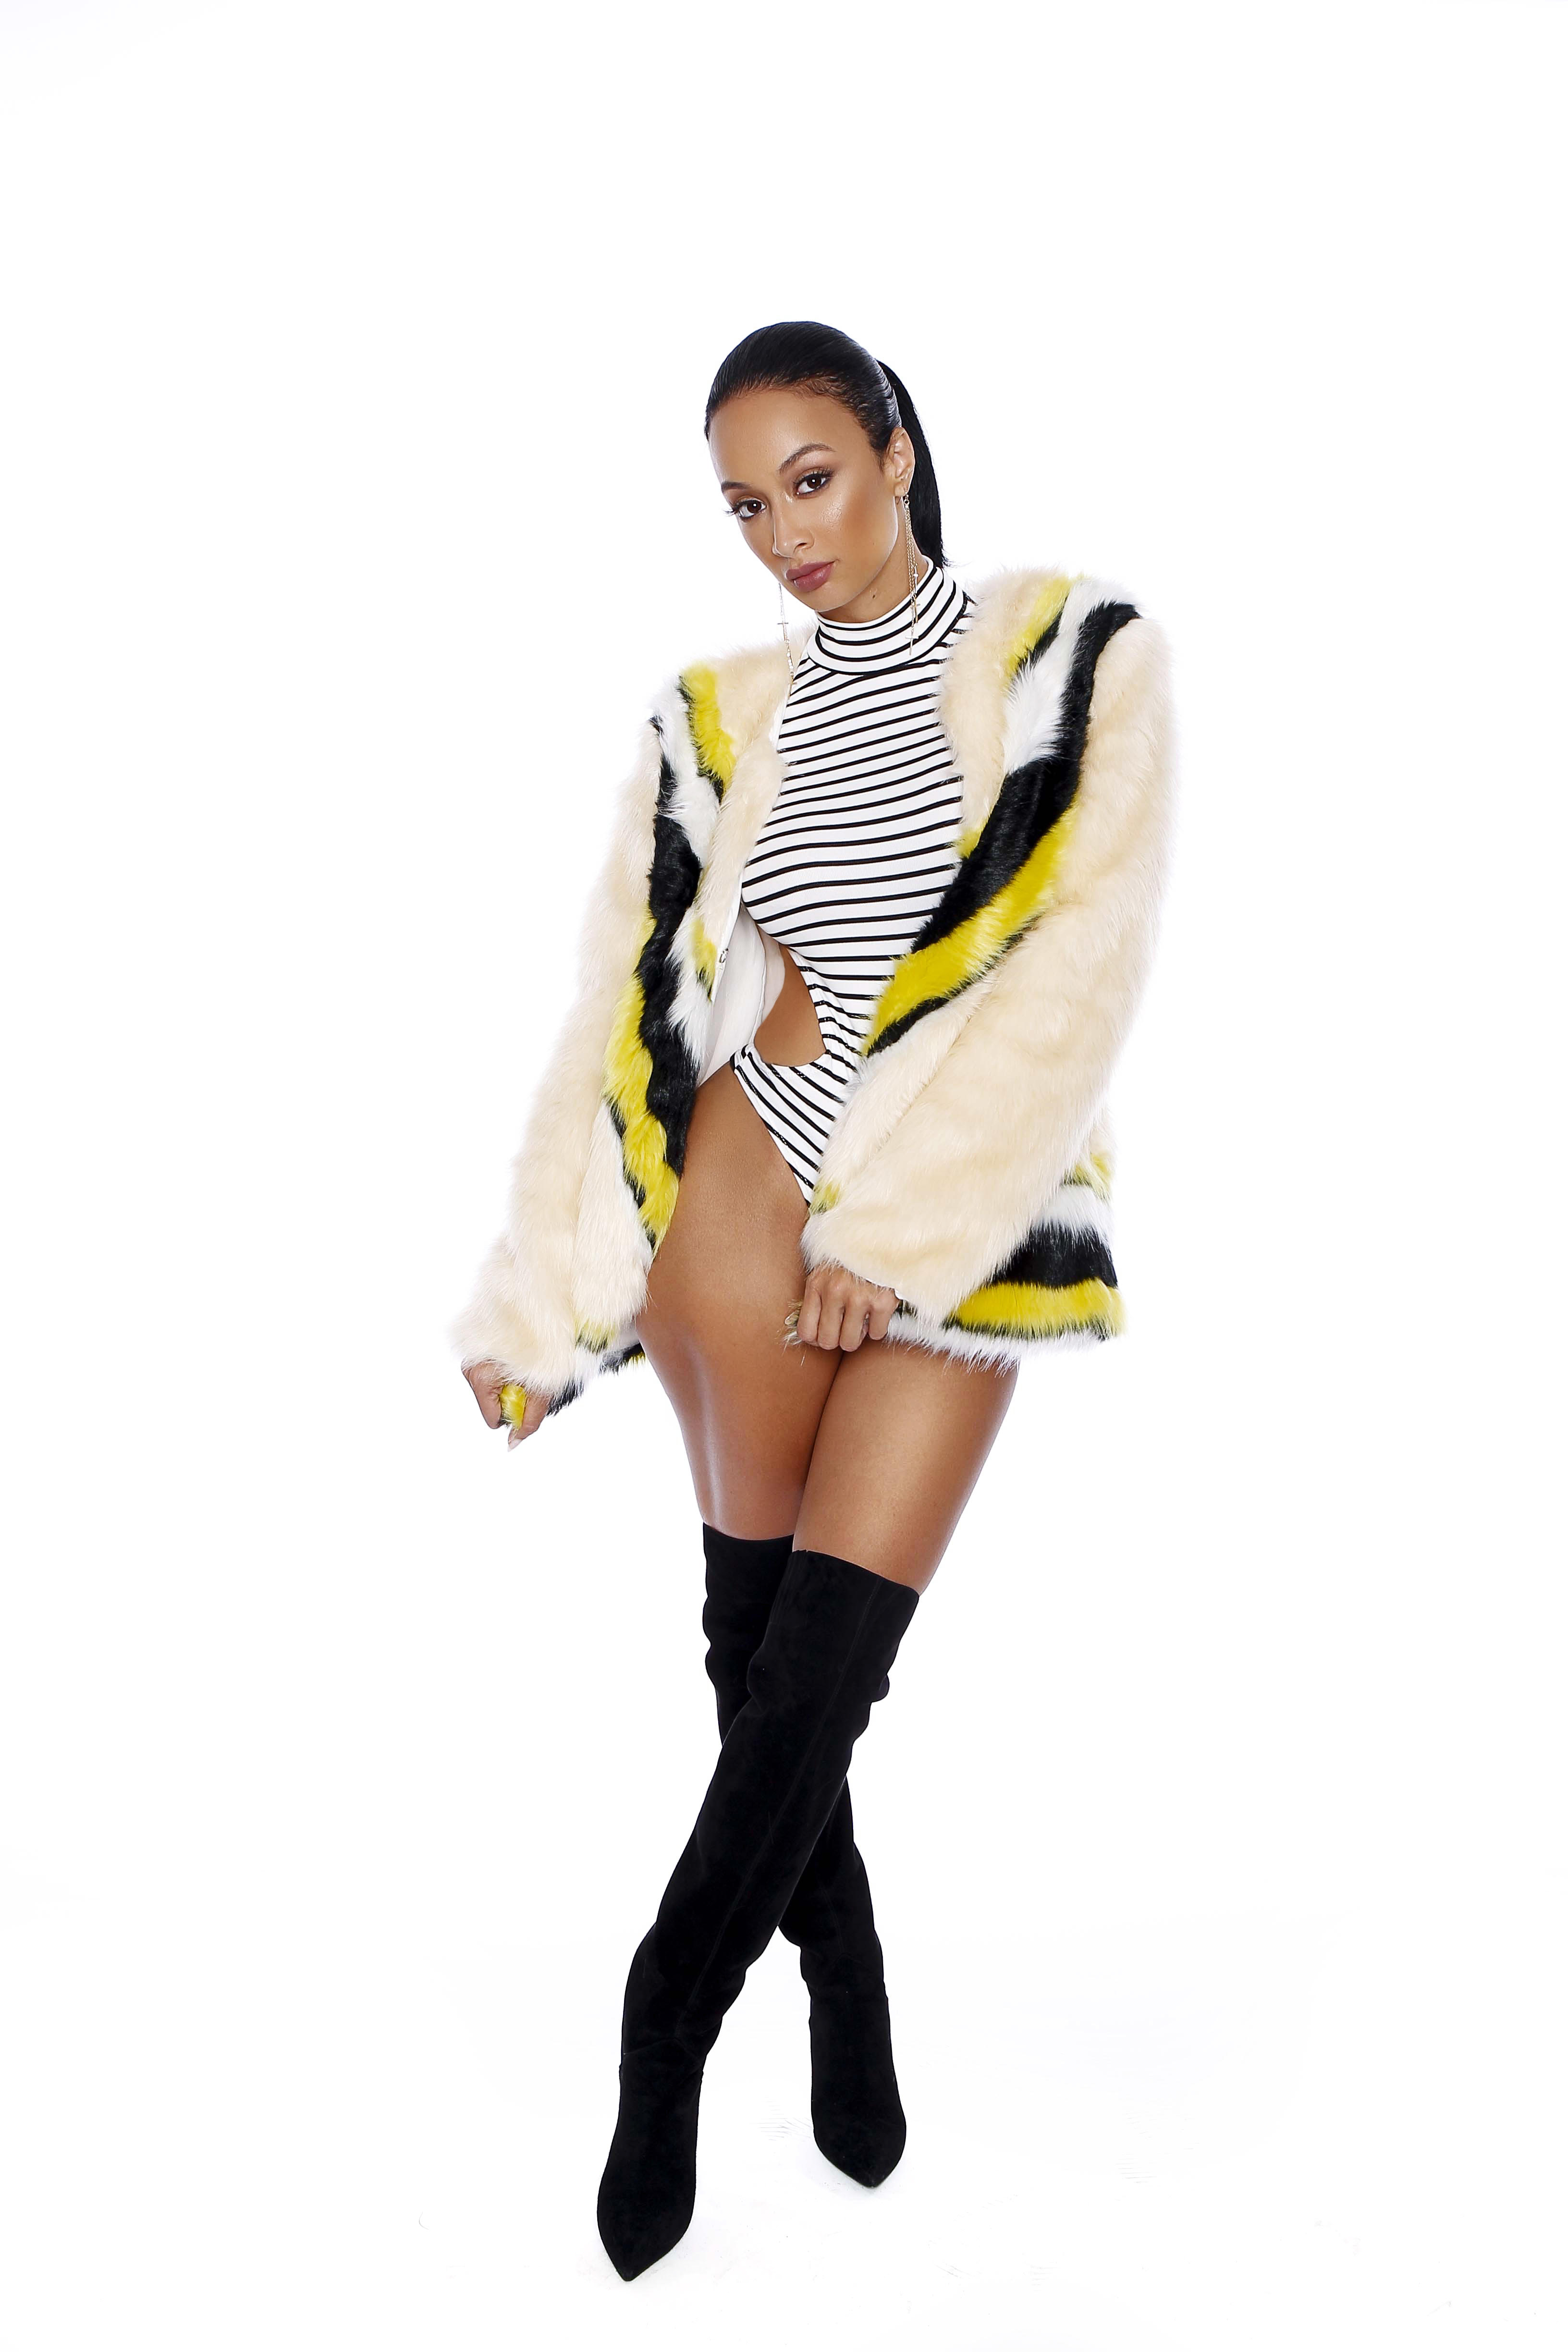 interview draya michele talks becoming an entrepreneur the source interview draya michele talks becoming an entrepreneur